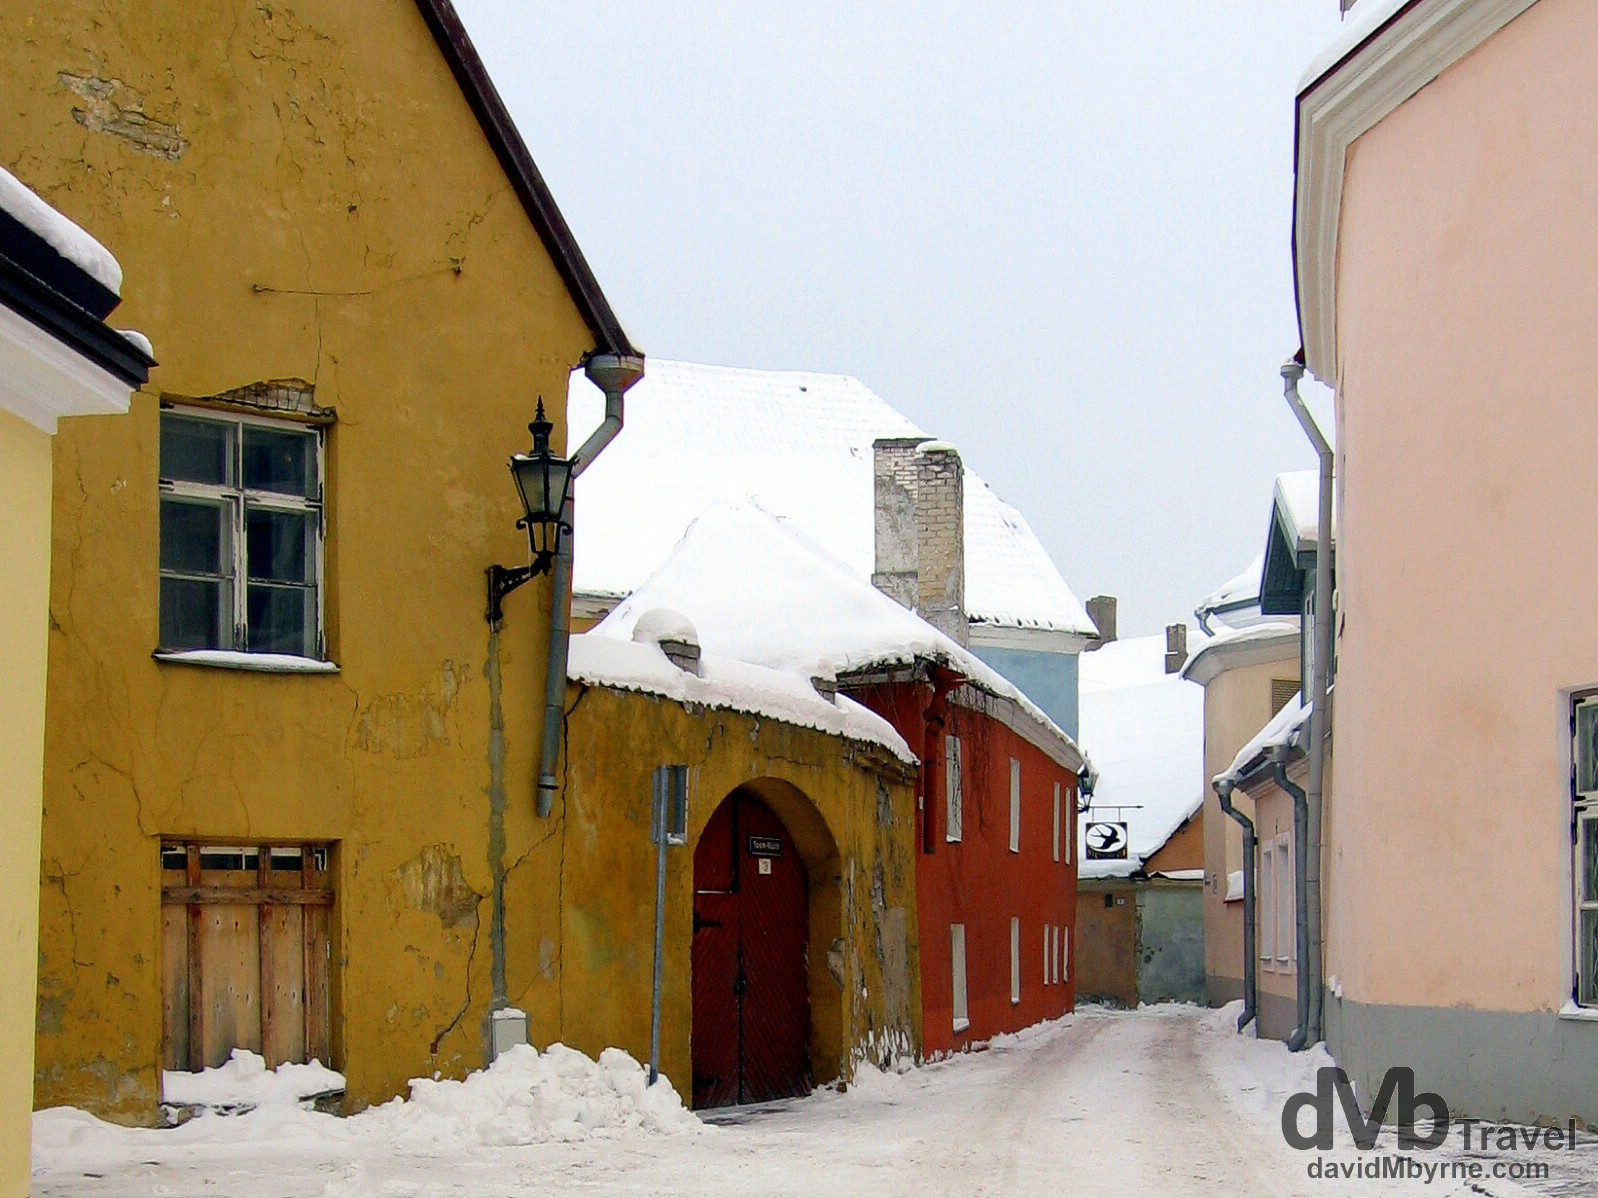 Colourful pastel buildings on the wintry streets of Old Town, Tallinn, Estonia. March 2, 2006.